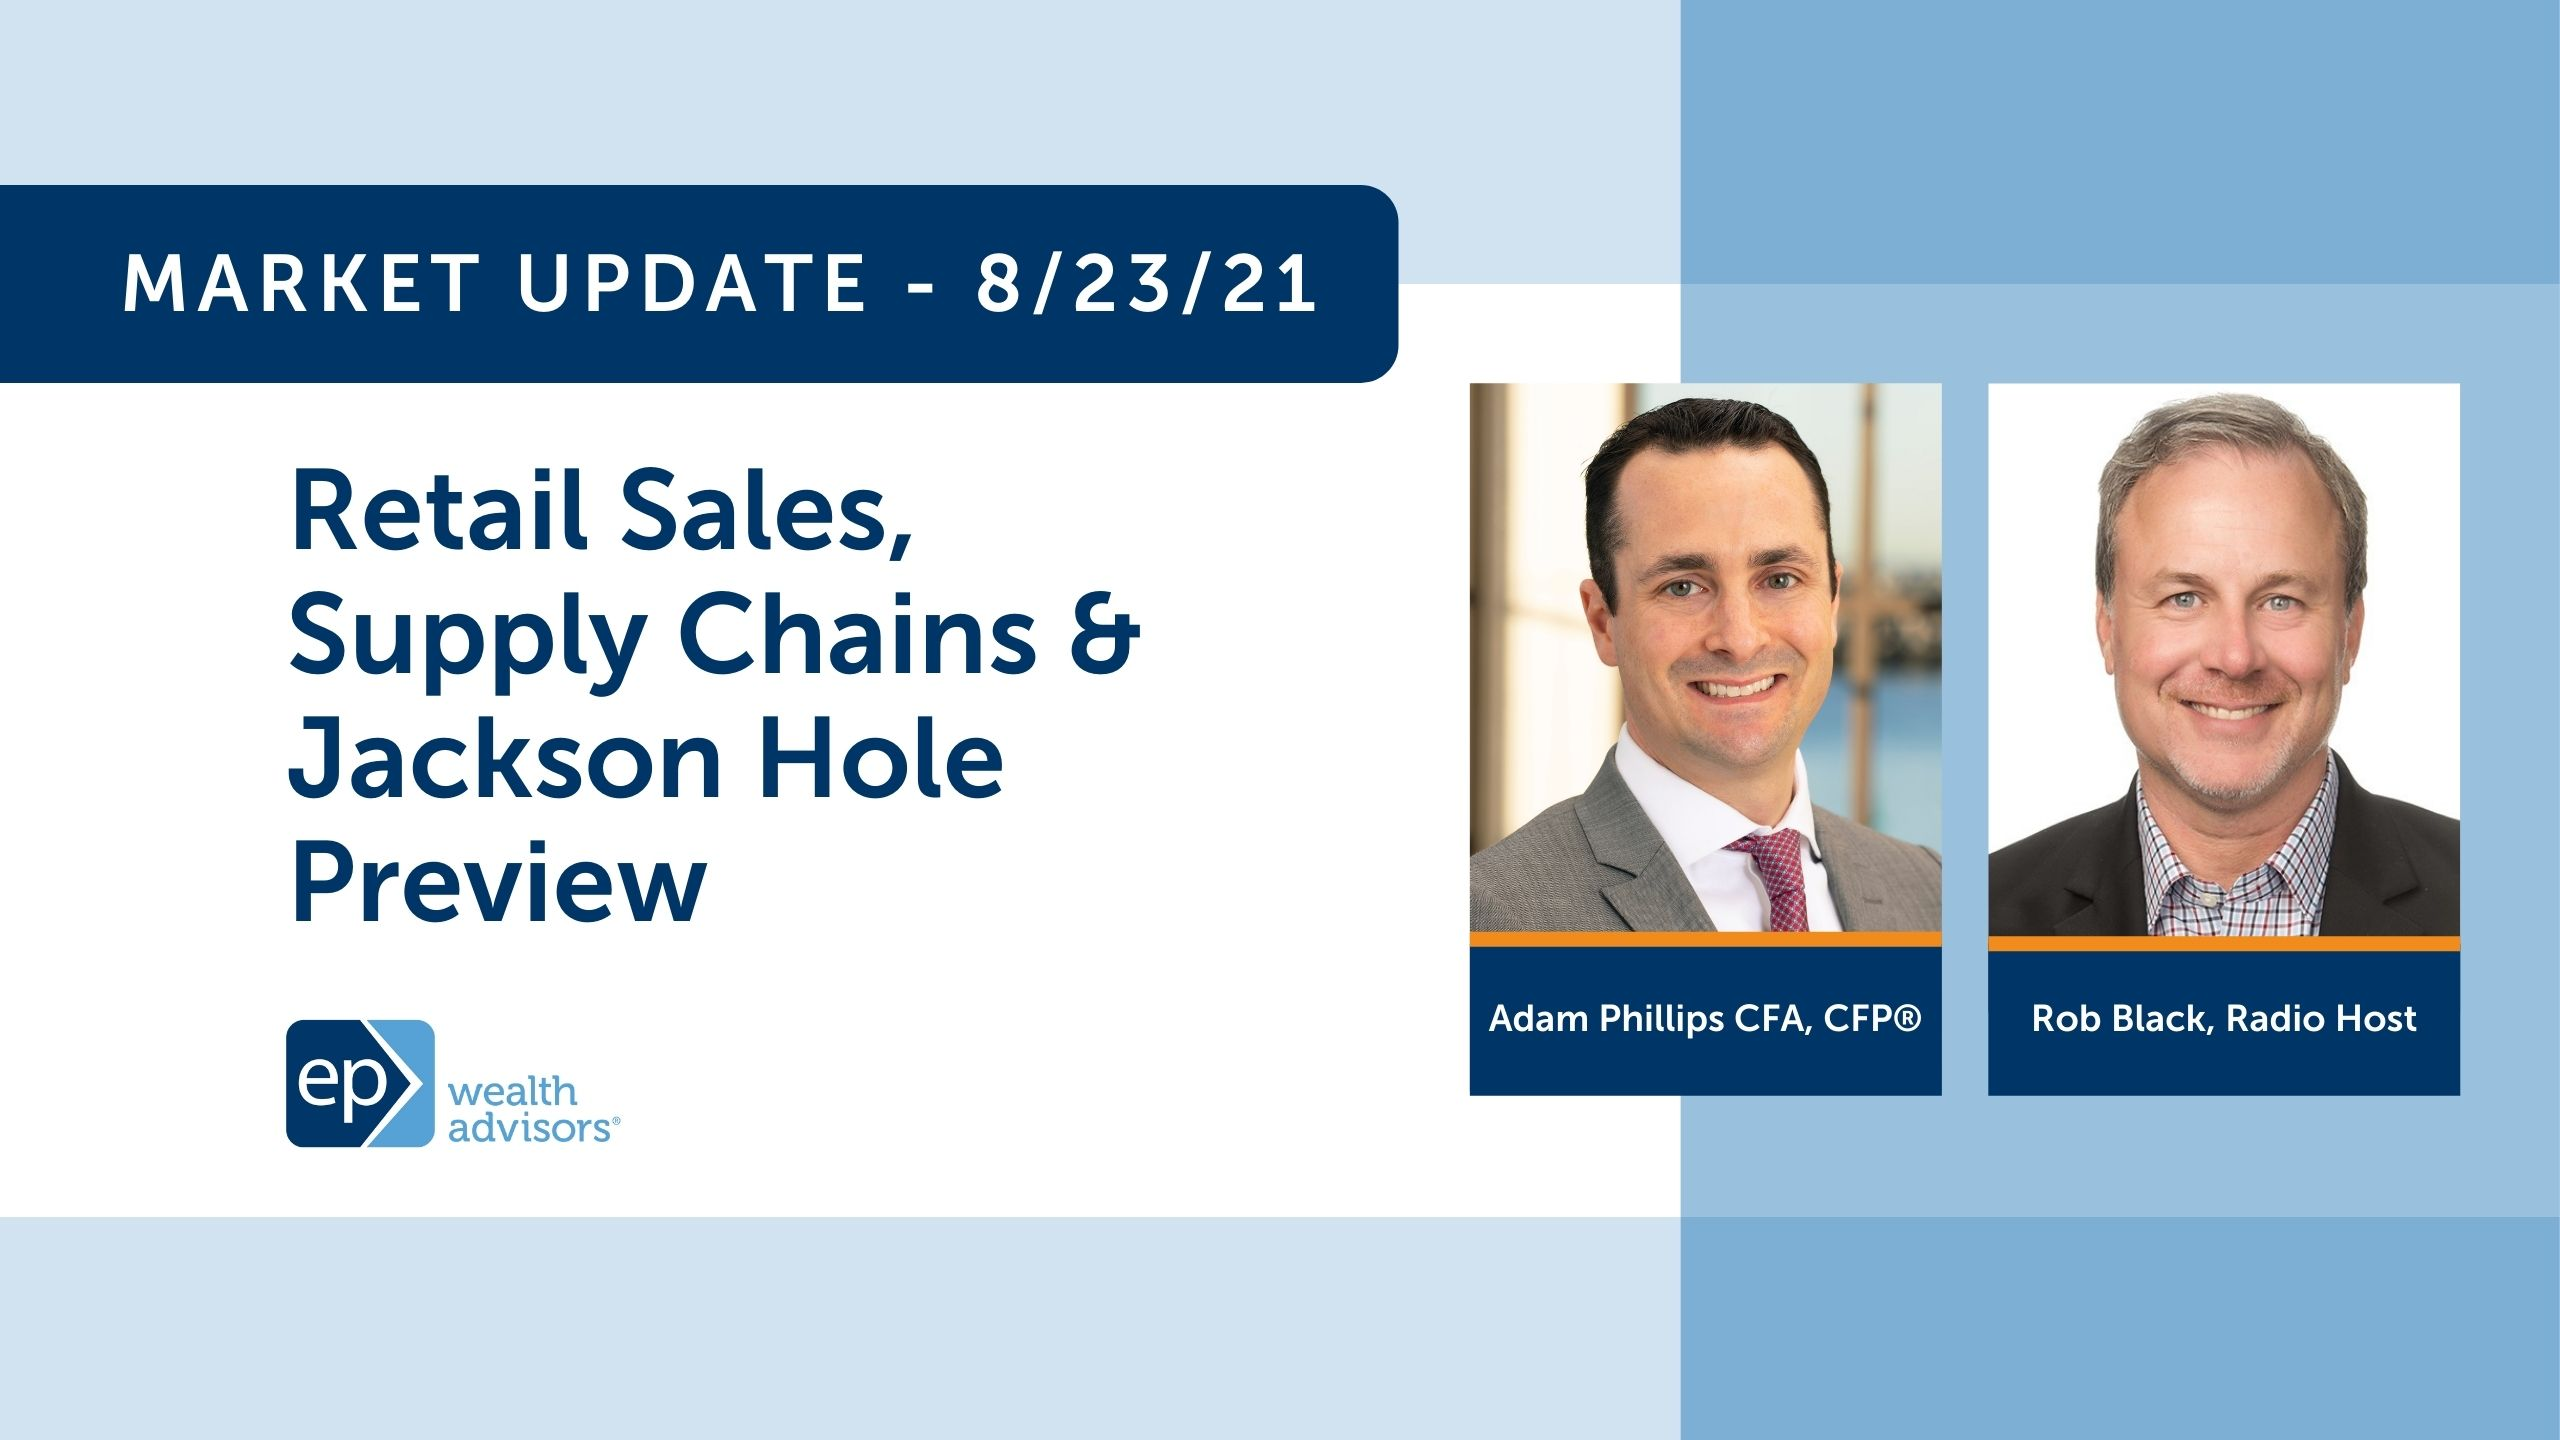 Retail Sales, Supply Chains & Jackson Hole Preview